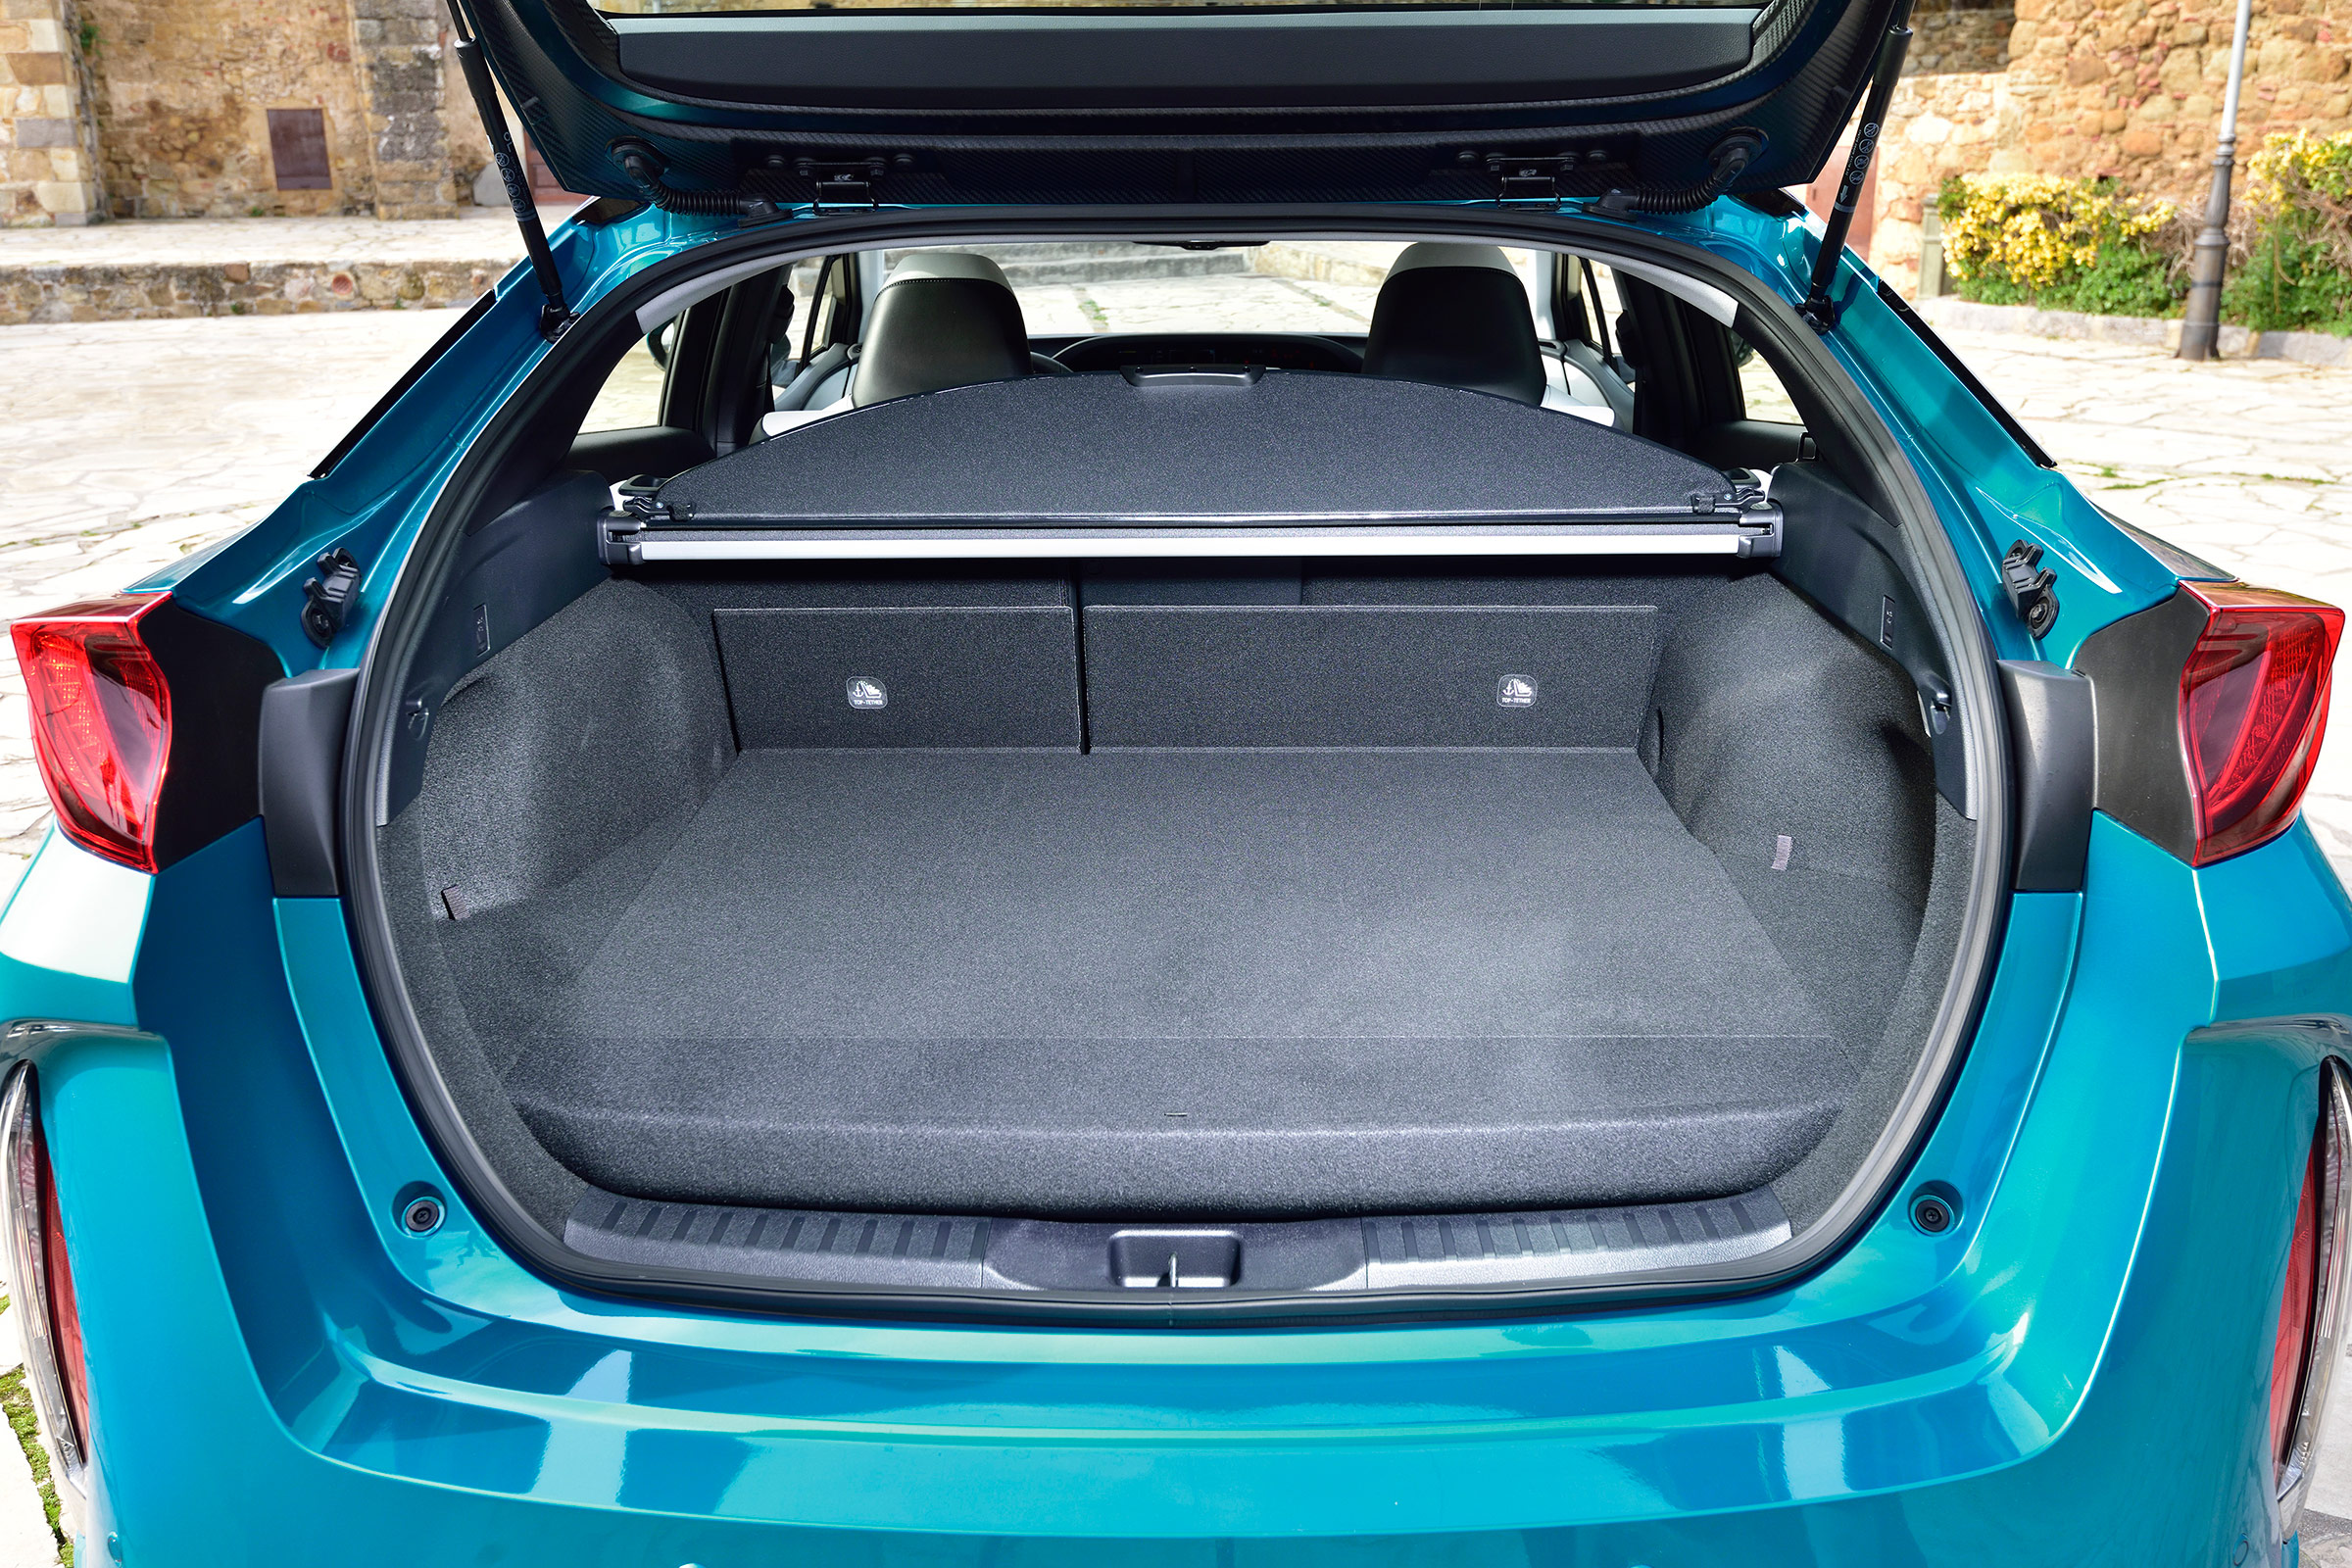 2017 Toyota Prius Blue Interior View Cargo Trunk (Photo 7 of 64)